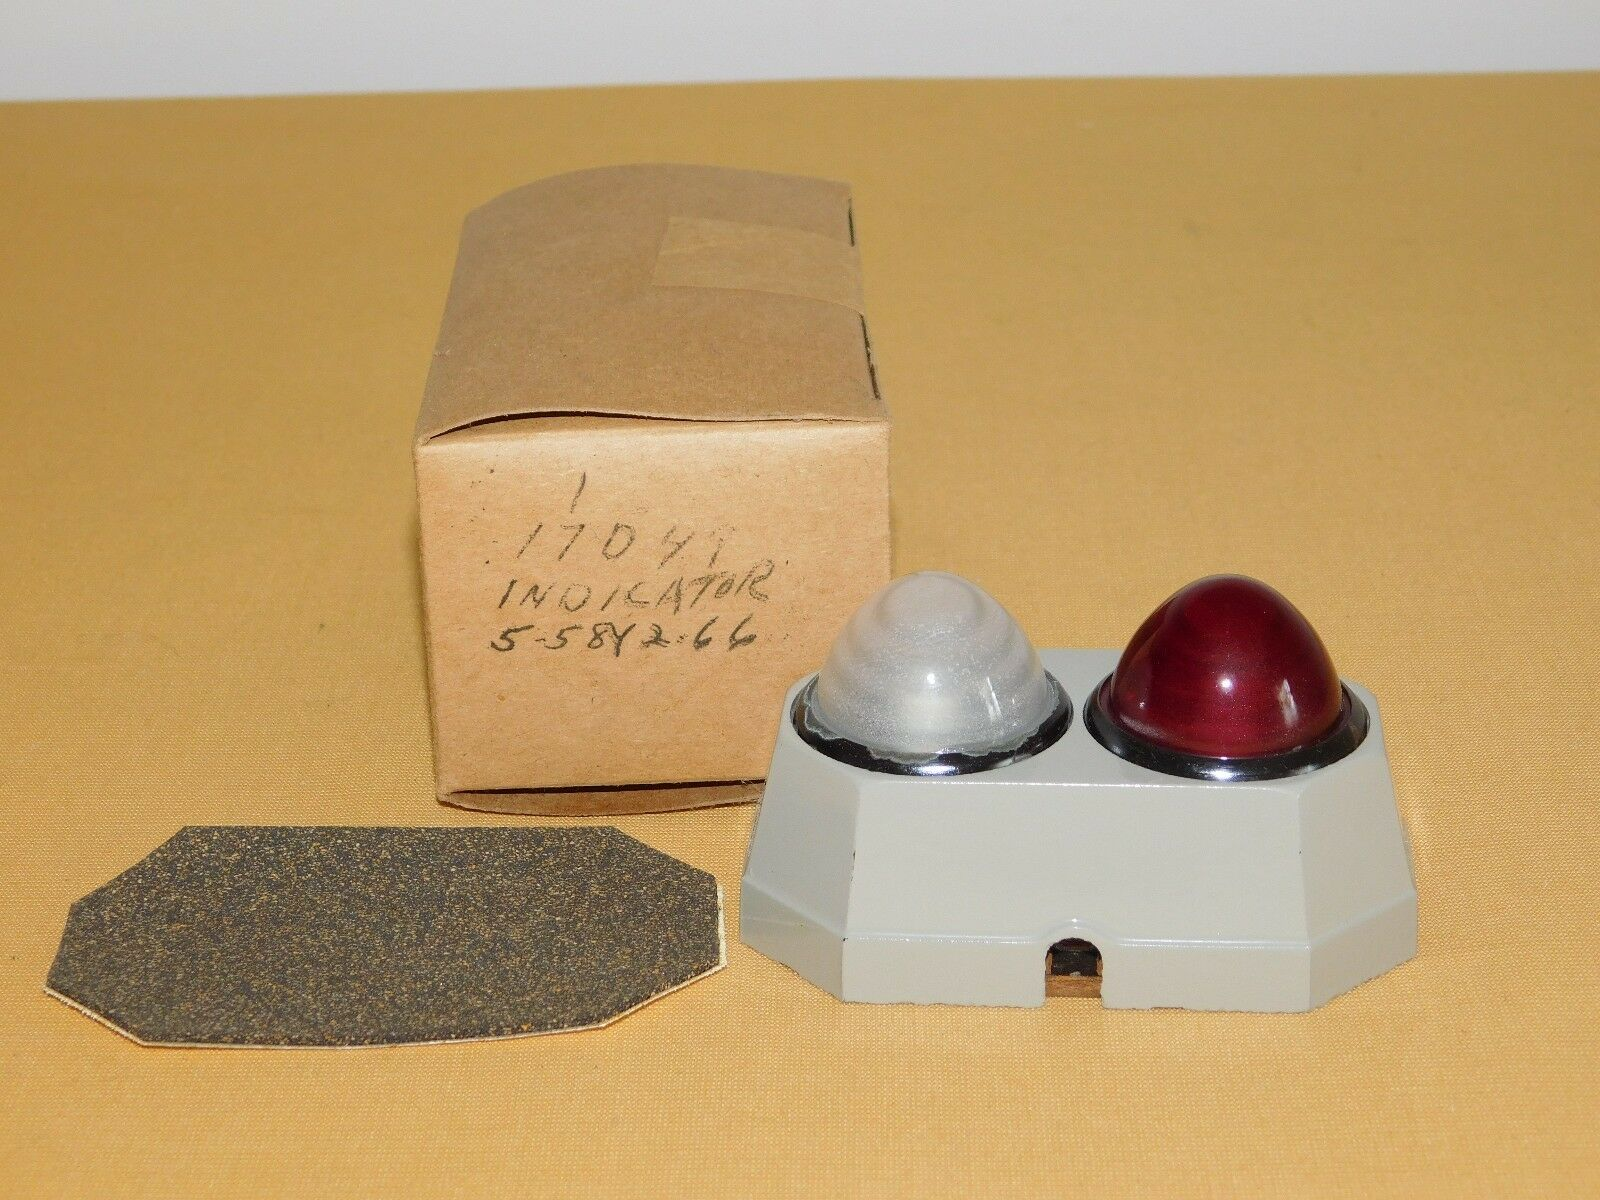 Vintage 3 4 High Red White Indicator Lights Unused In Box Nos 5pcs 24v 8mm Led Power Signal Light Xd8 1 Ebay Of 8only Available